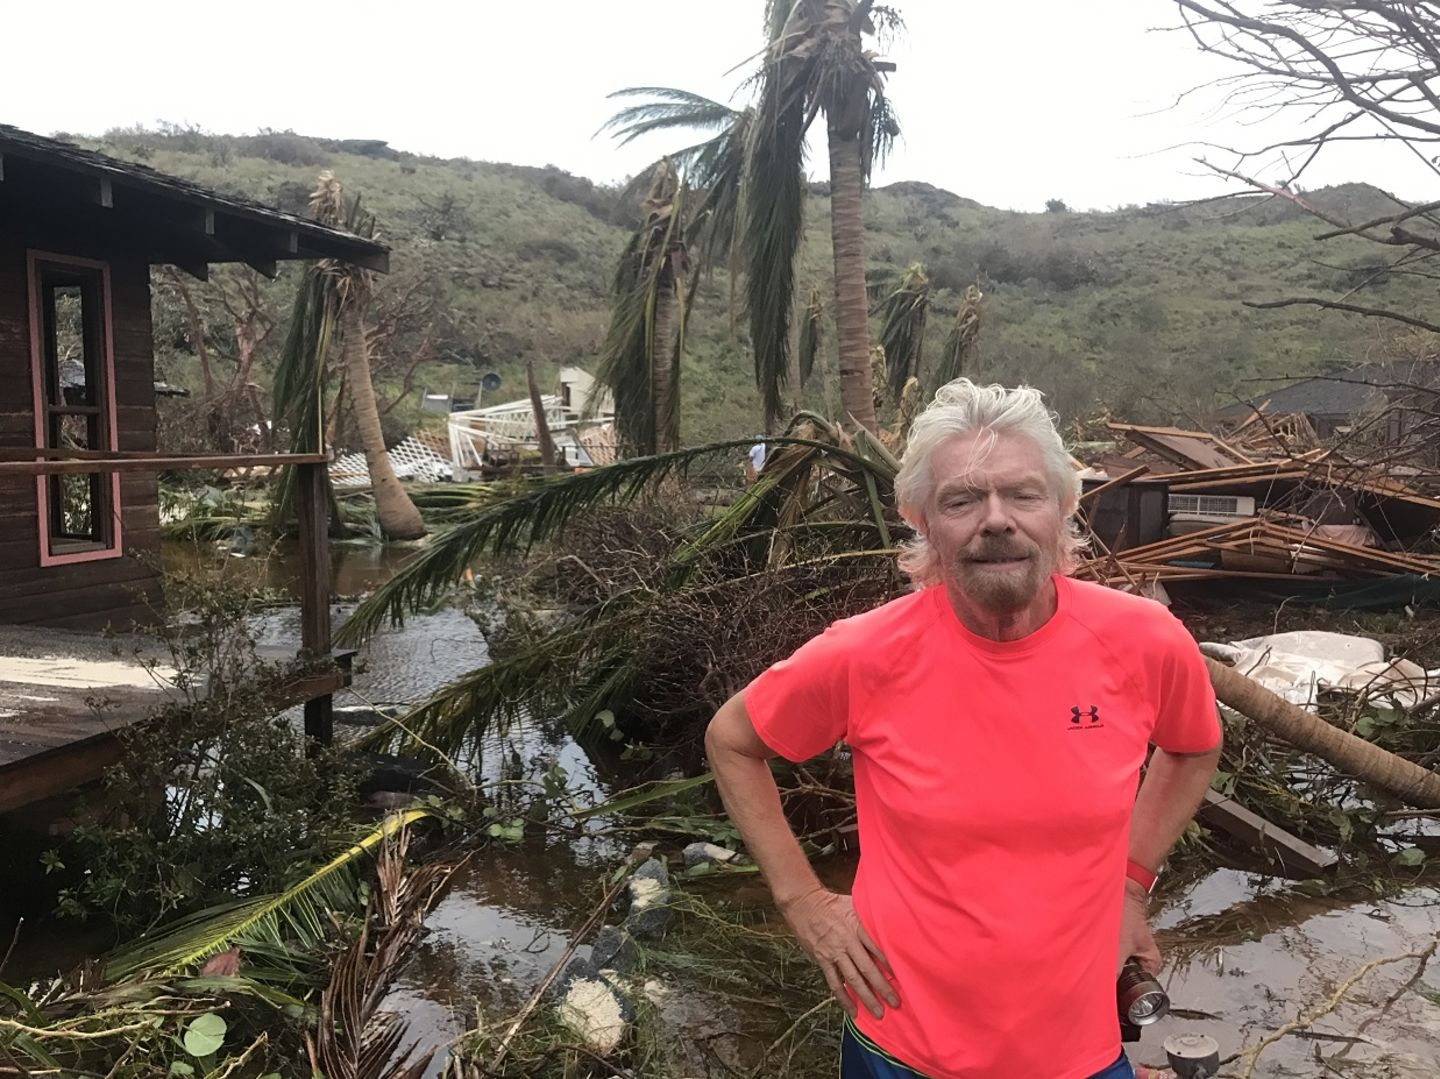 Richard Branson standing in front of the damage caused by hurricane irma on Necker Island